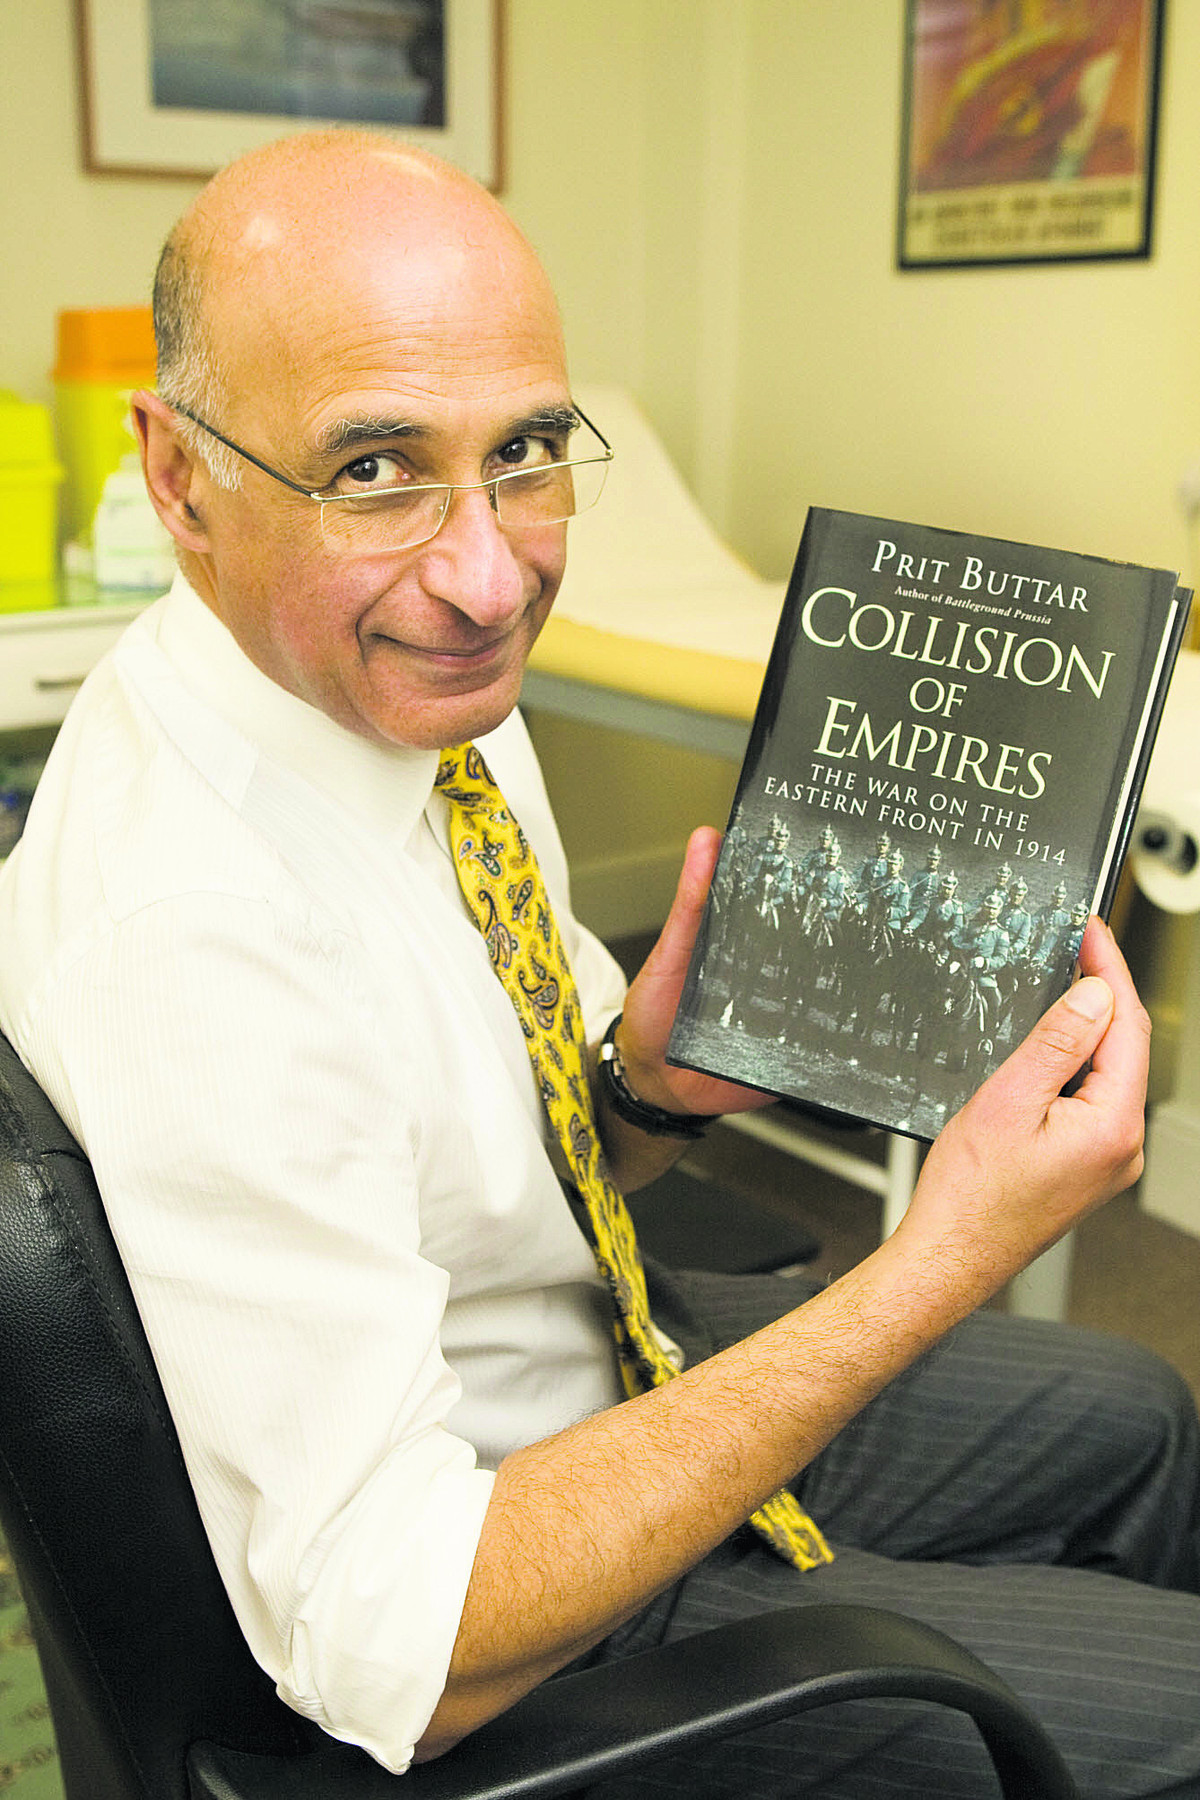 Dr Prit Buttar with a copy of his new book